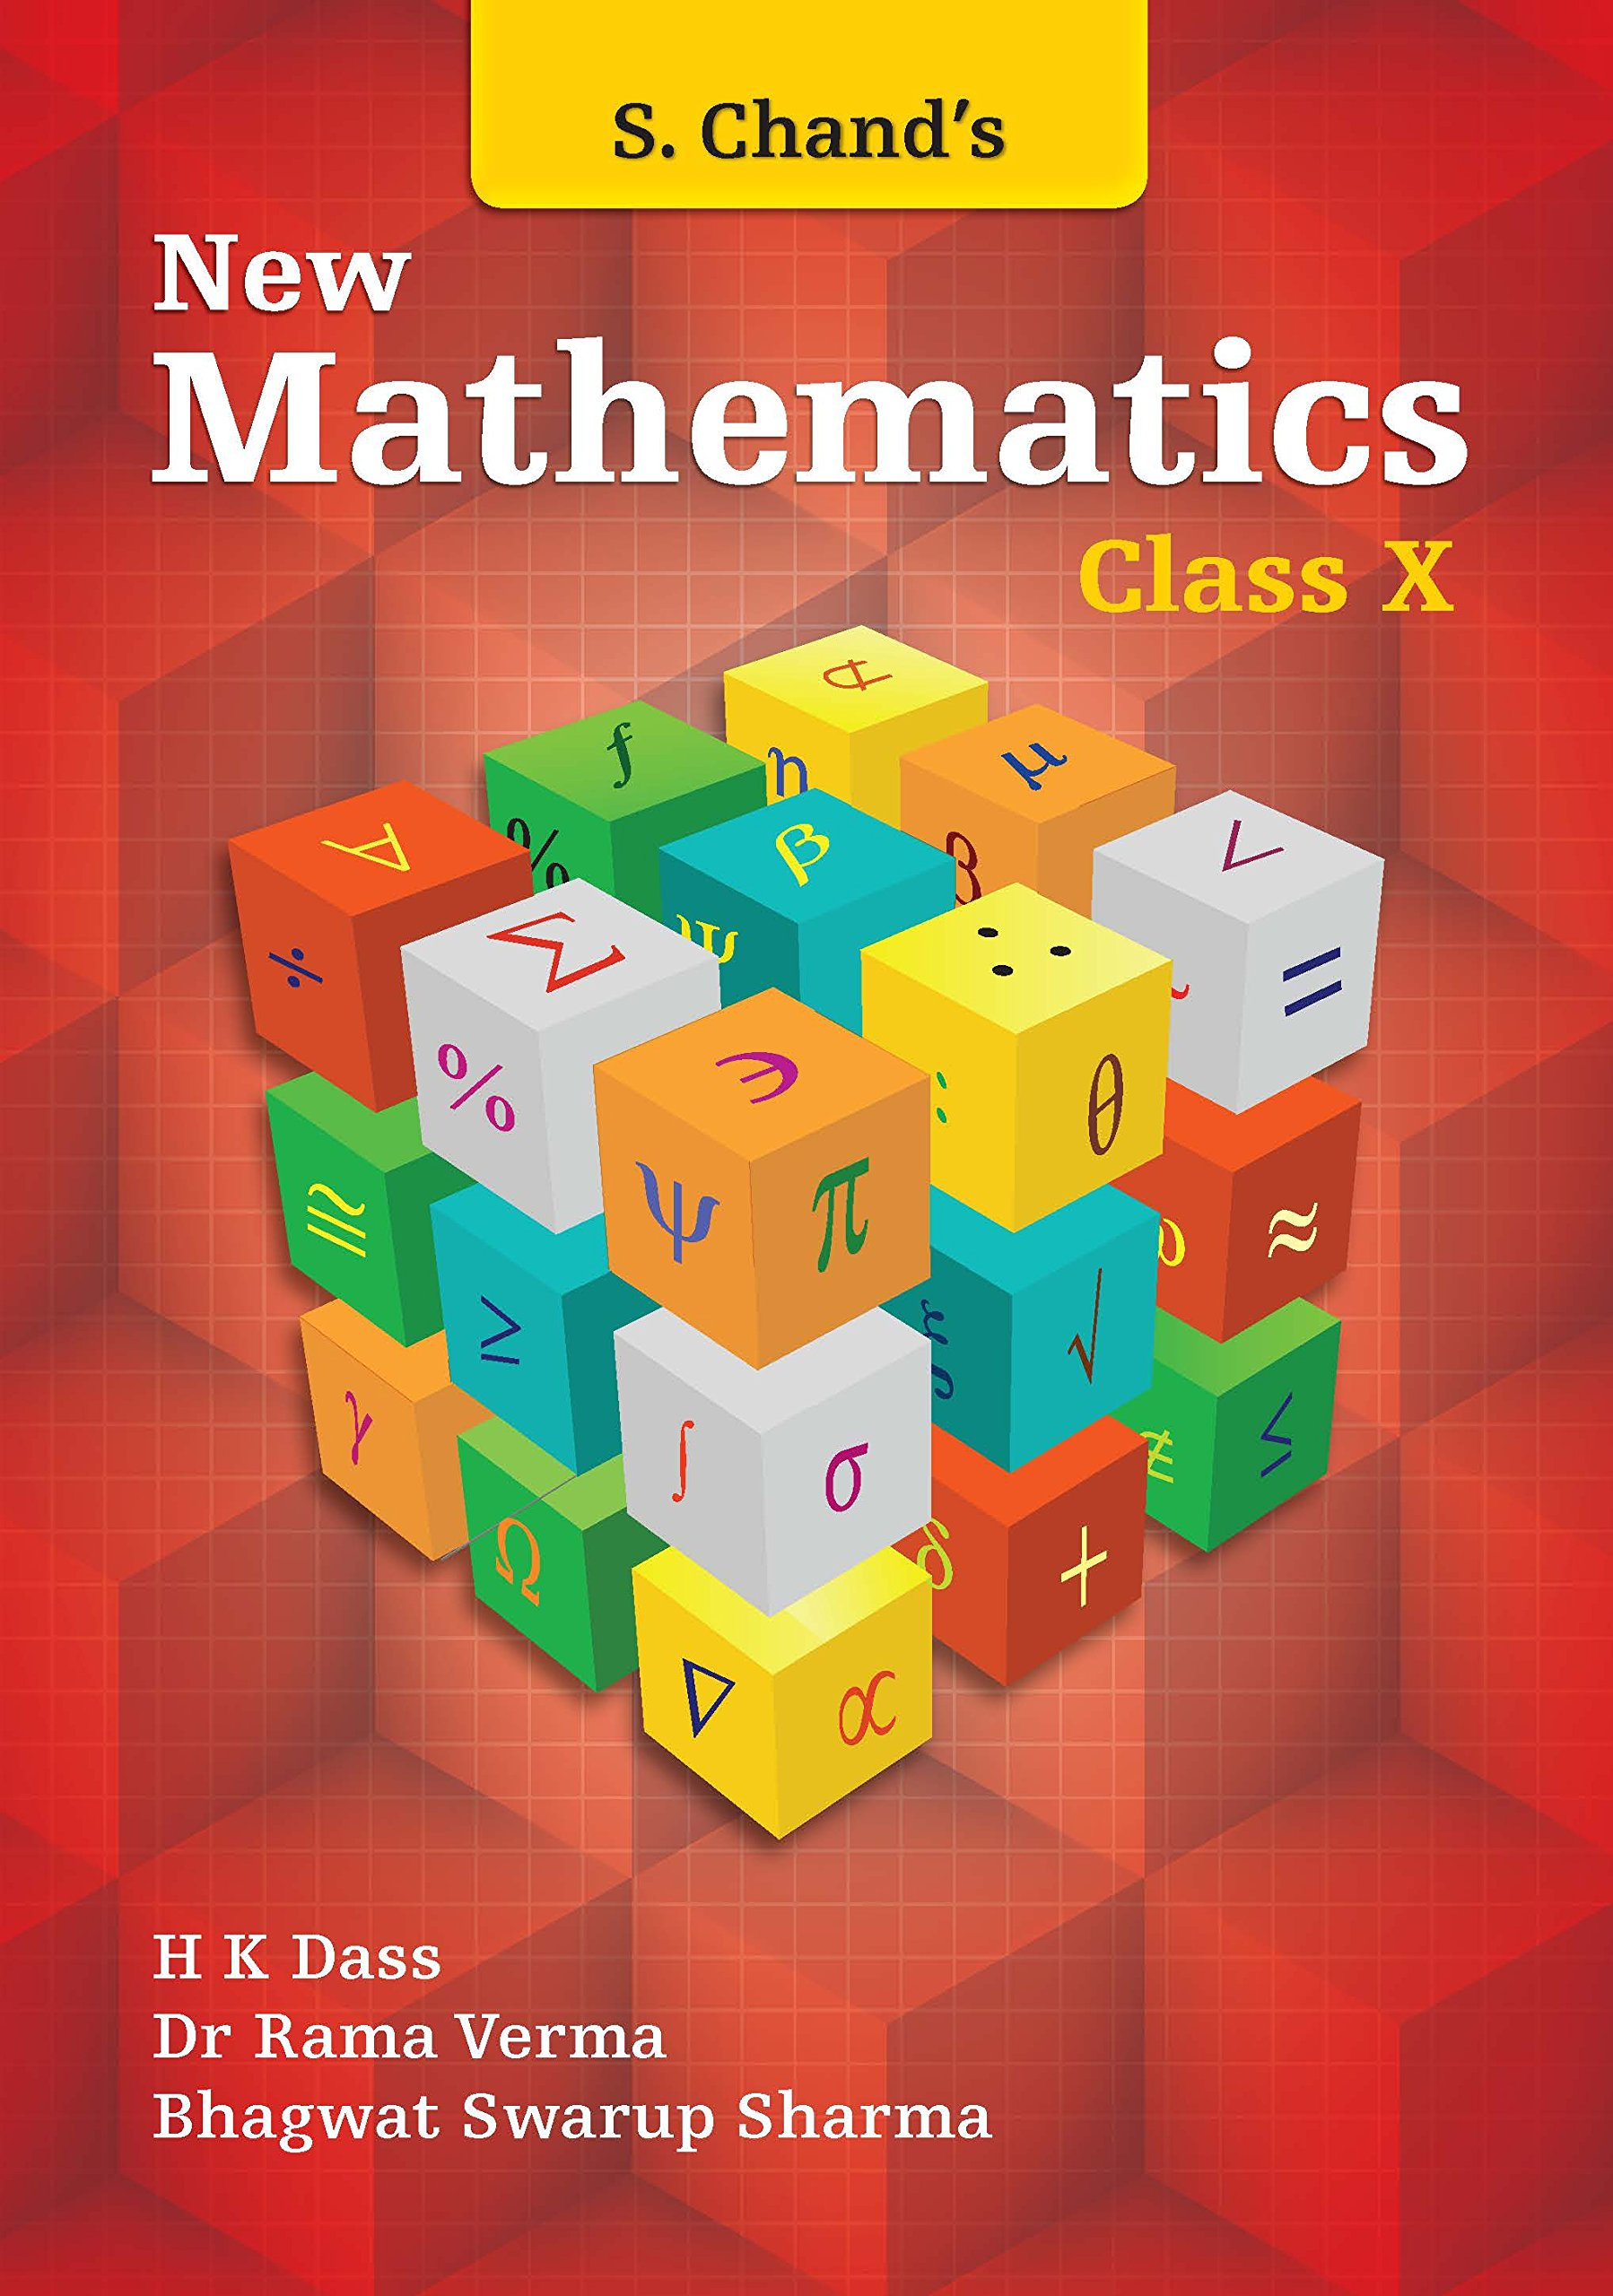 S Chand's New Mathematics for Class X 2018-19 Session